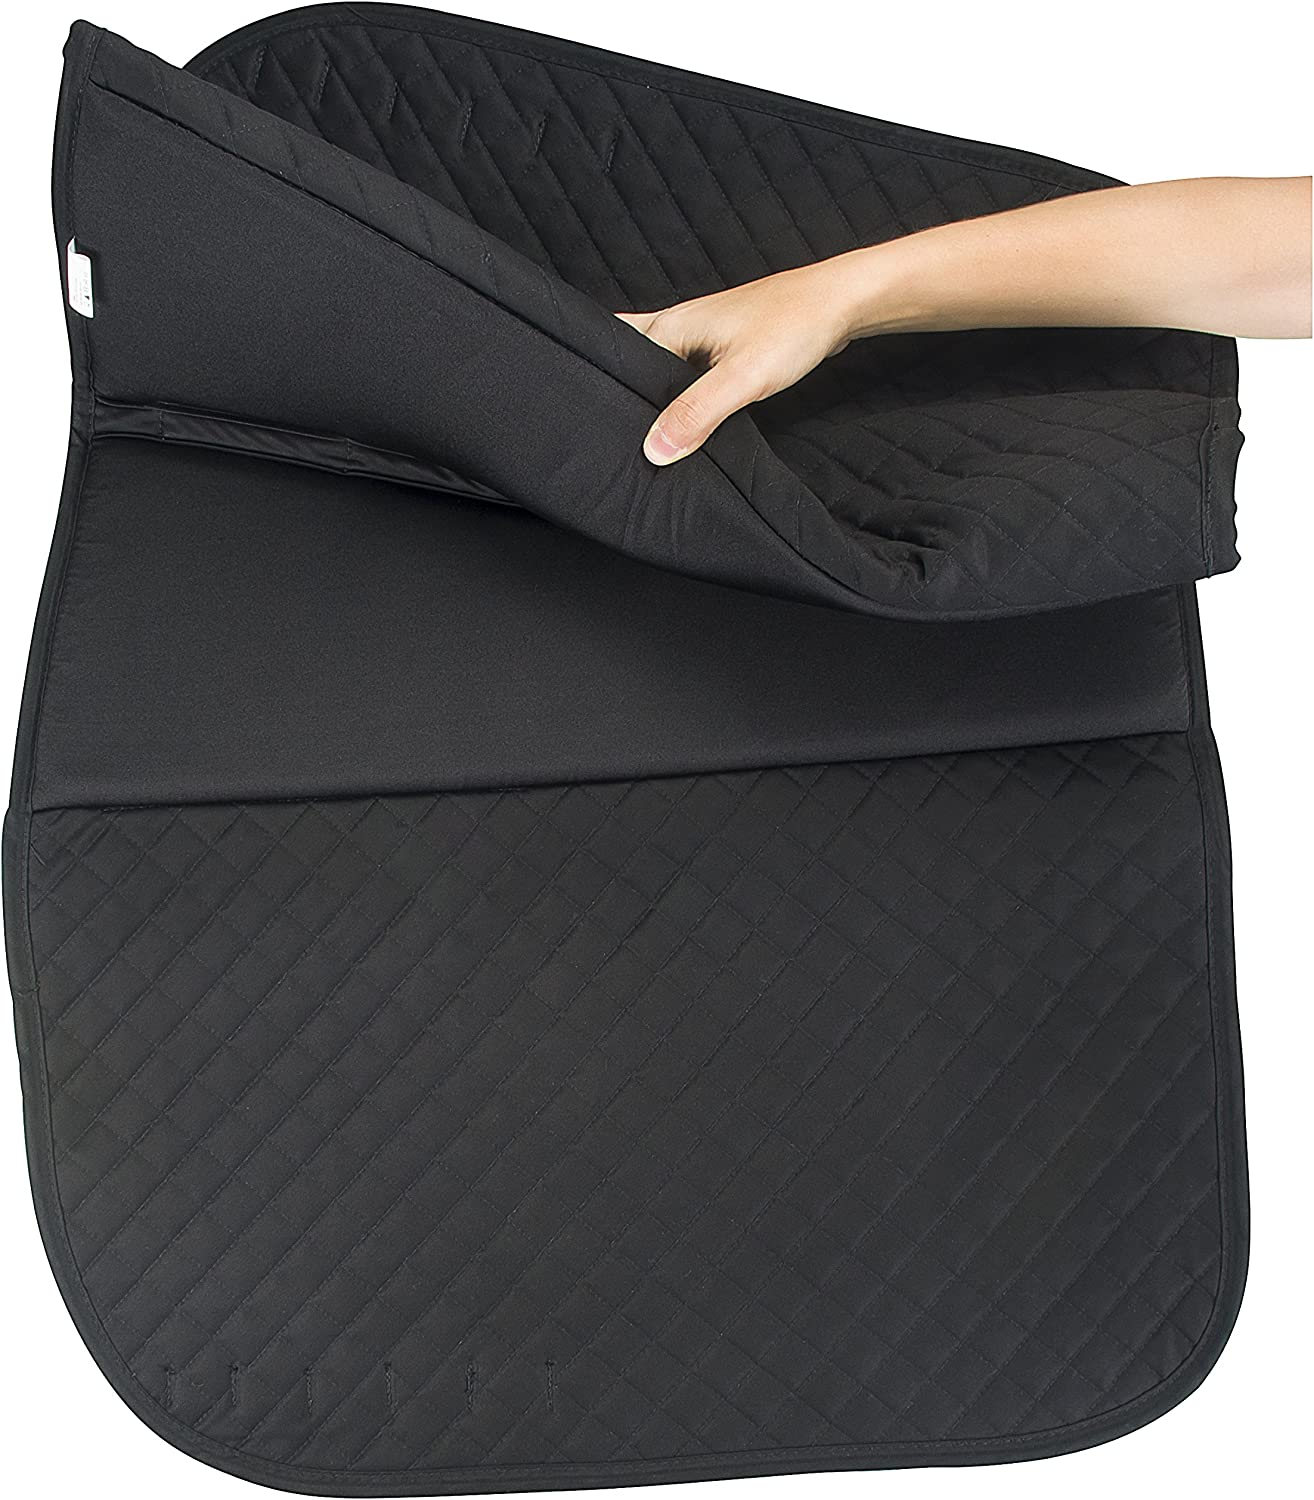 Large Black Success Equestrian Deluxe Dressage Friction Free NO Slip Saddle Pad